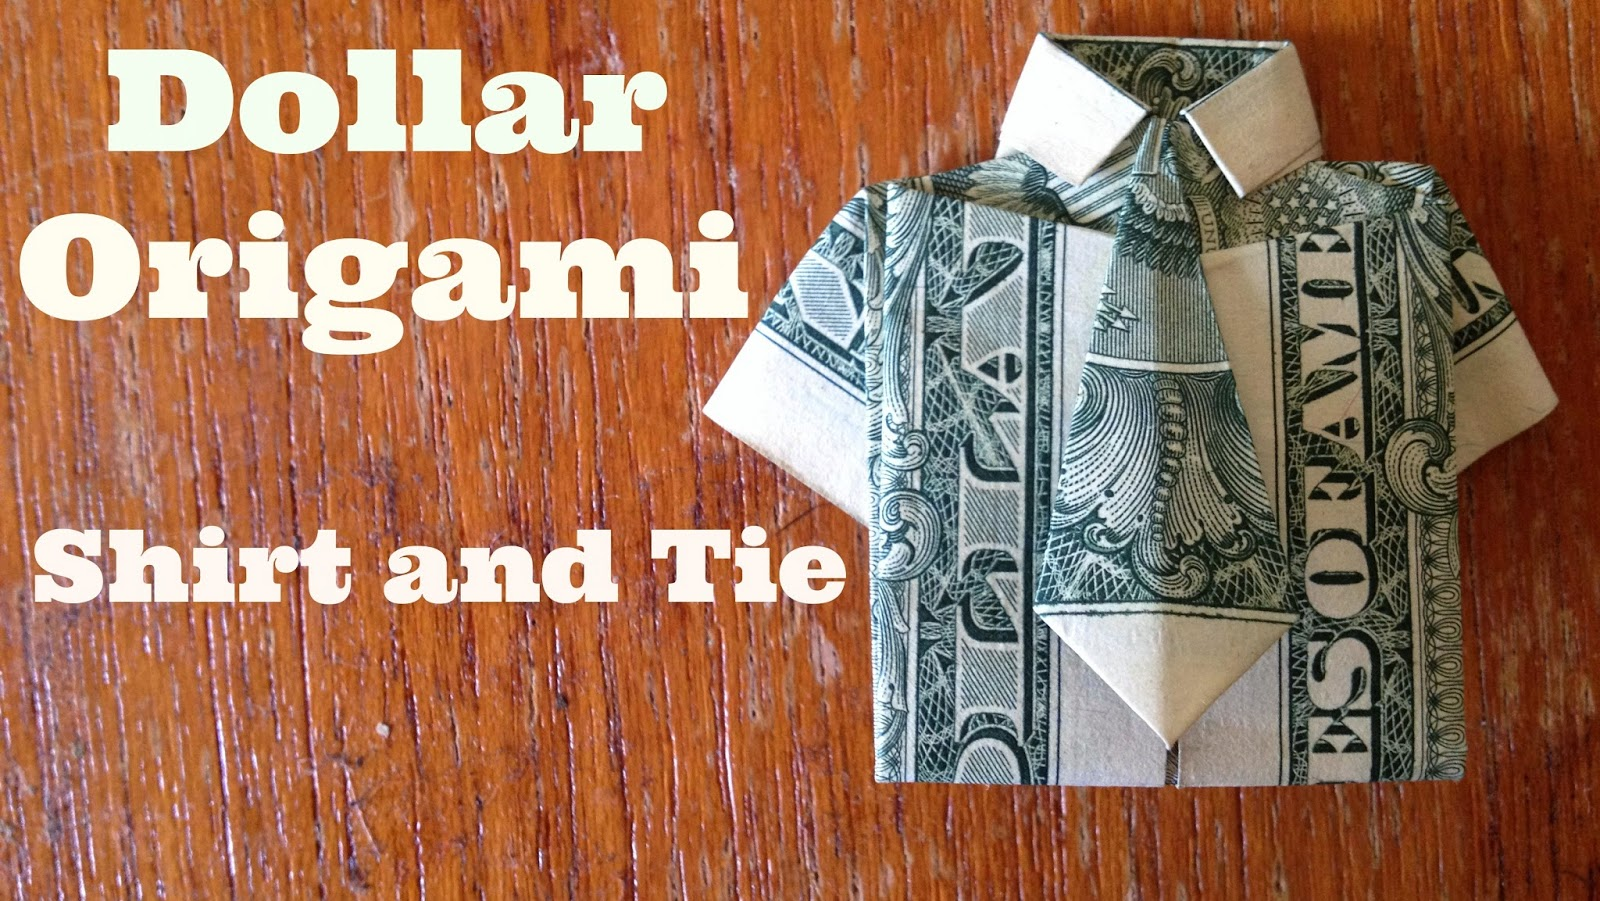 dollar bill origami shirt and tie the best hobbies blog